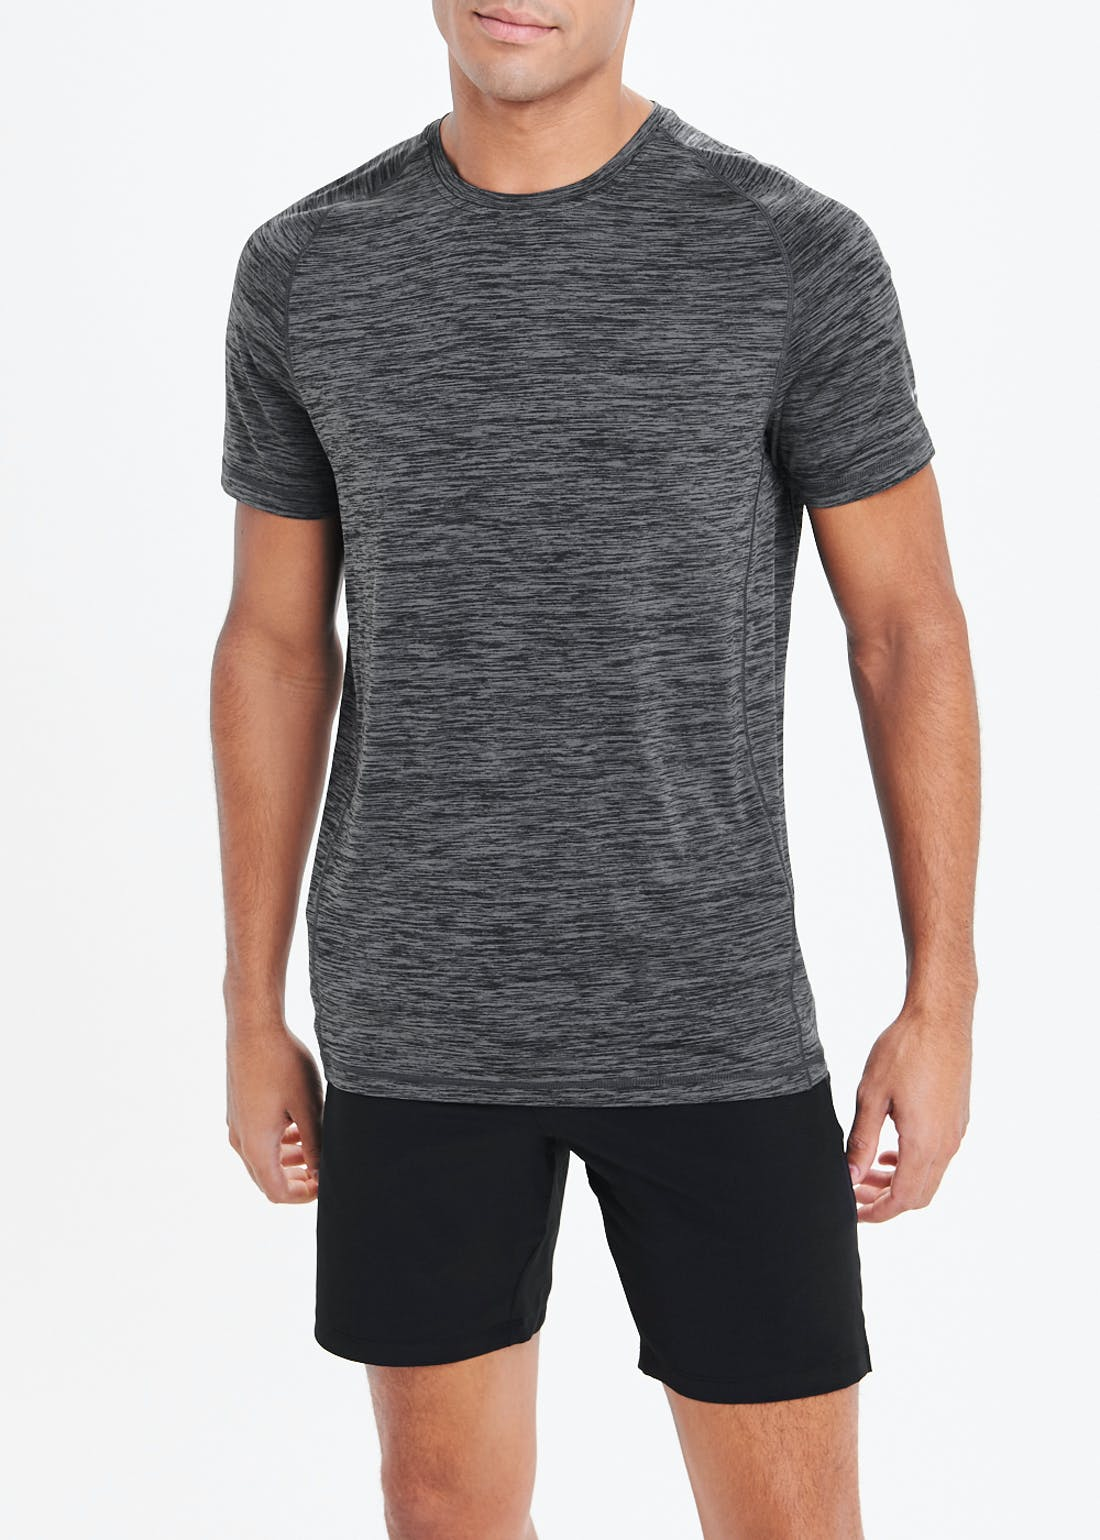 Souluxe Charcoal Basic Gym Top